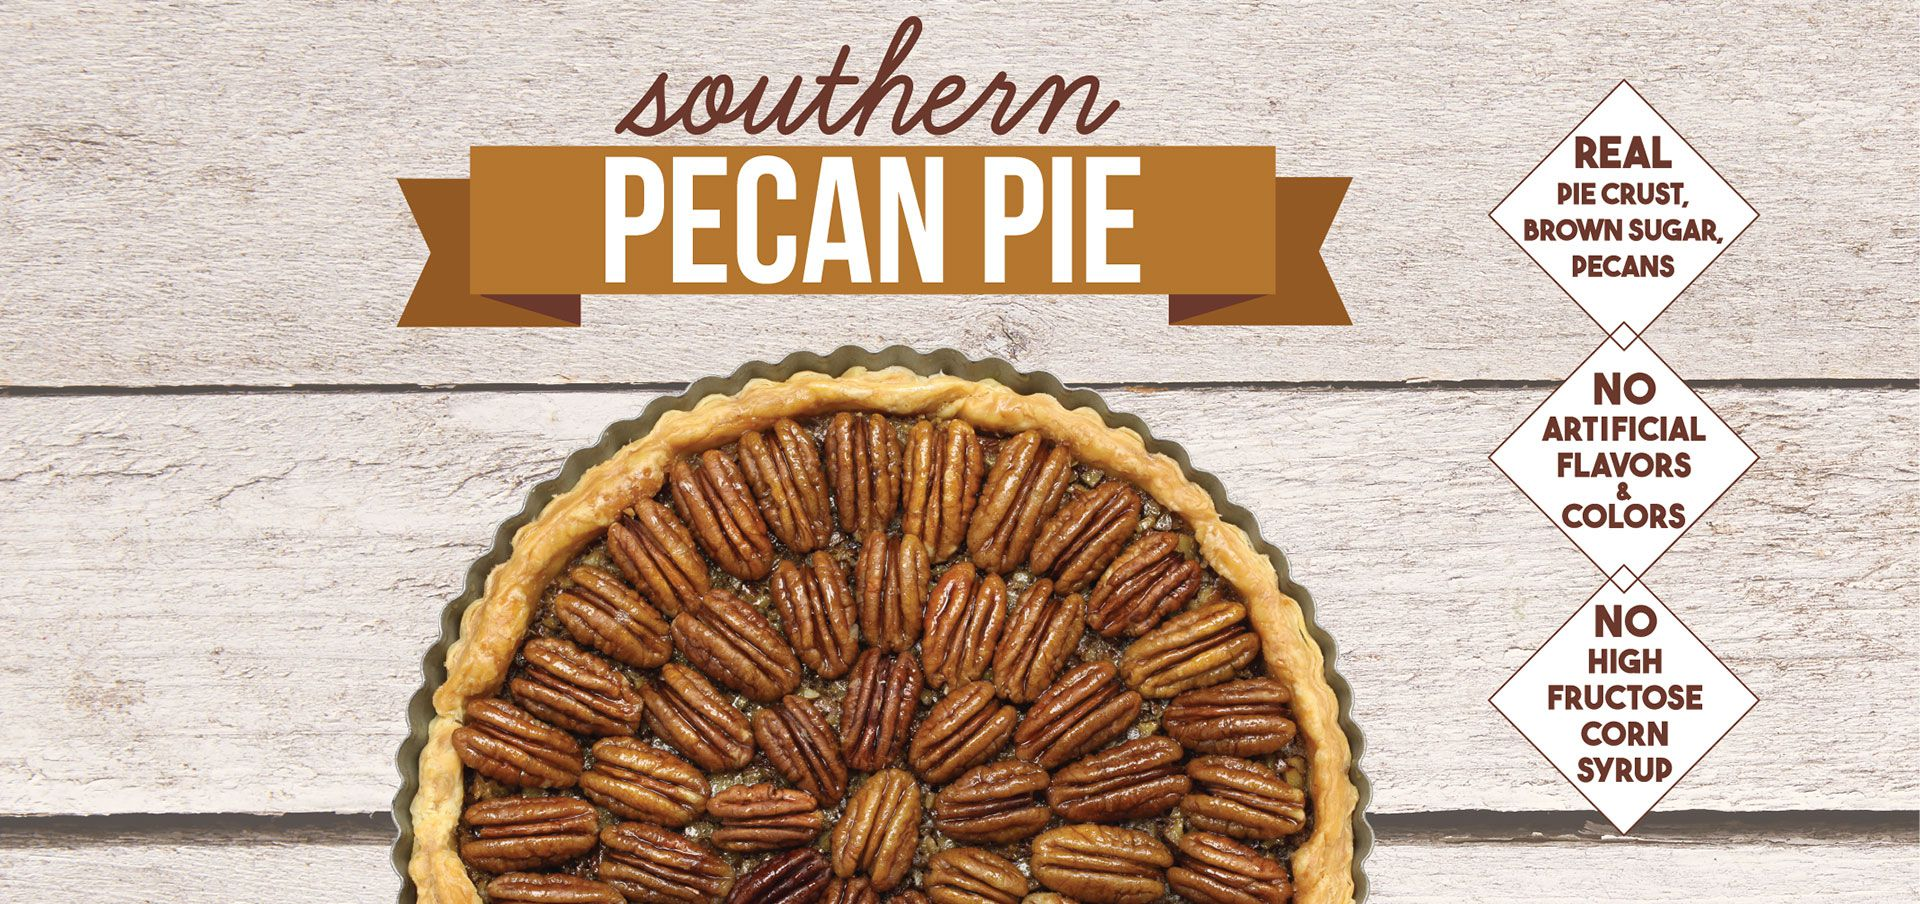 southern pecan pie label image